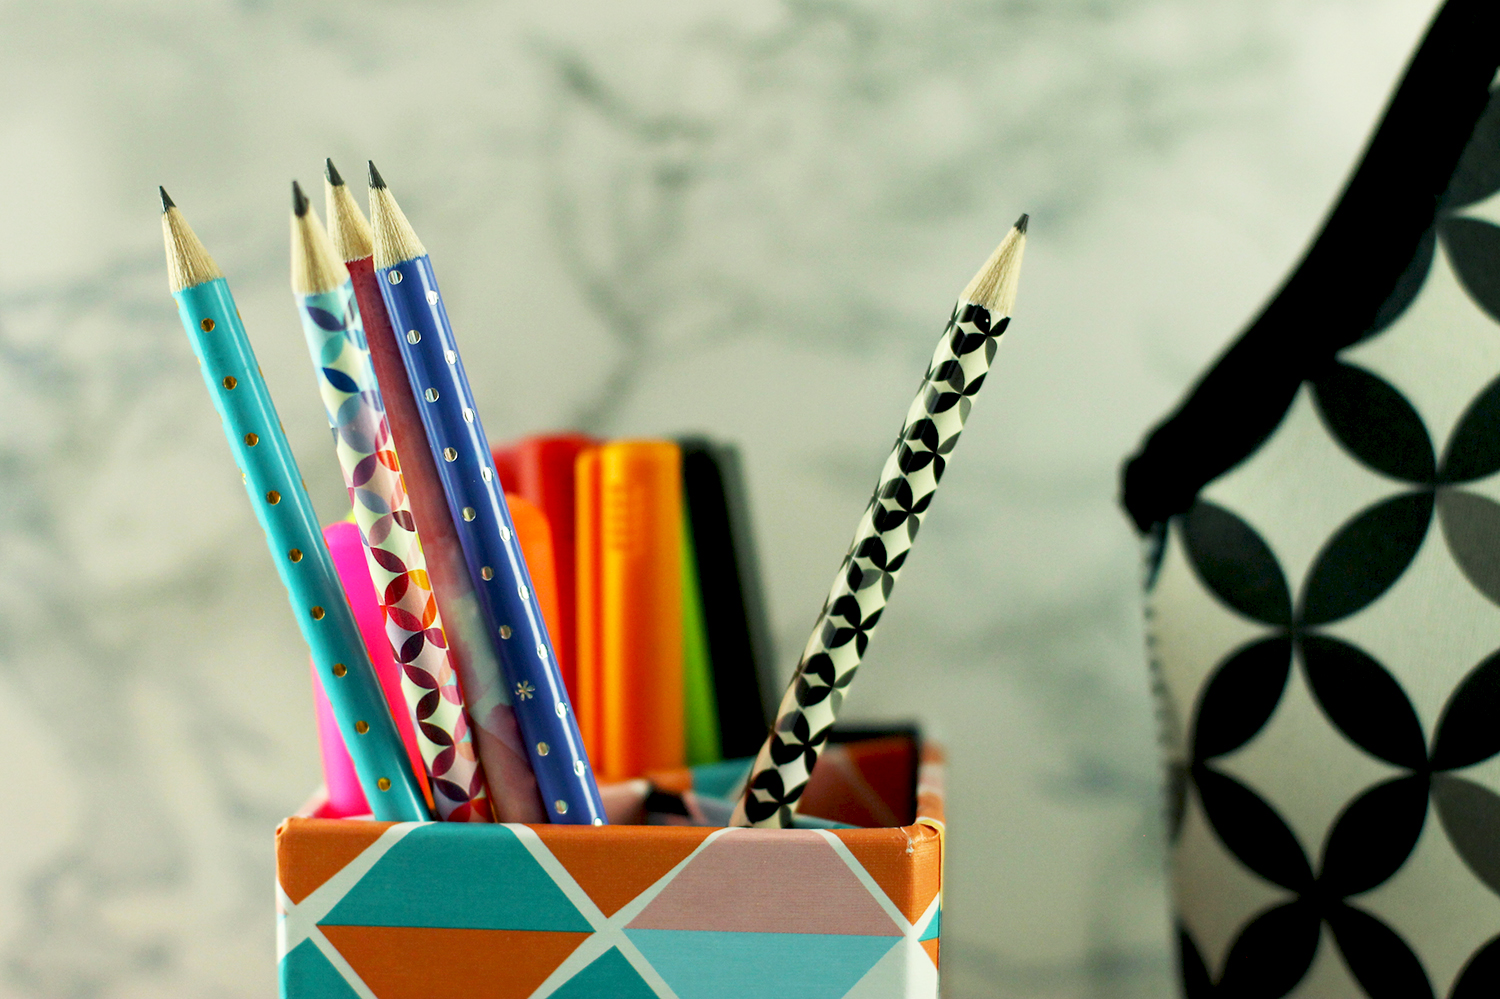 How adorable are thes erin condren pencils?